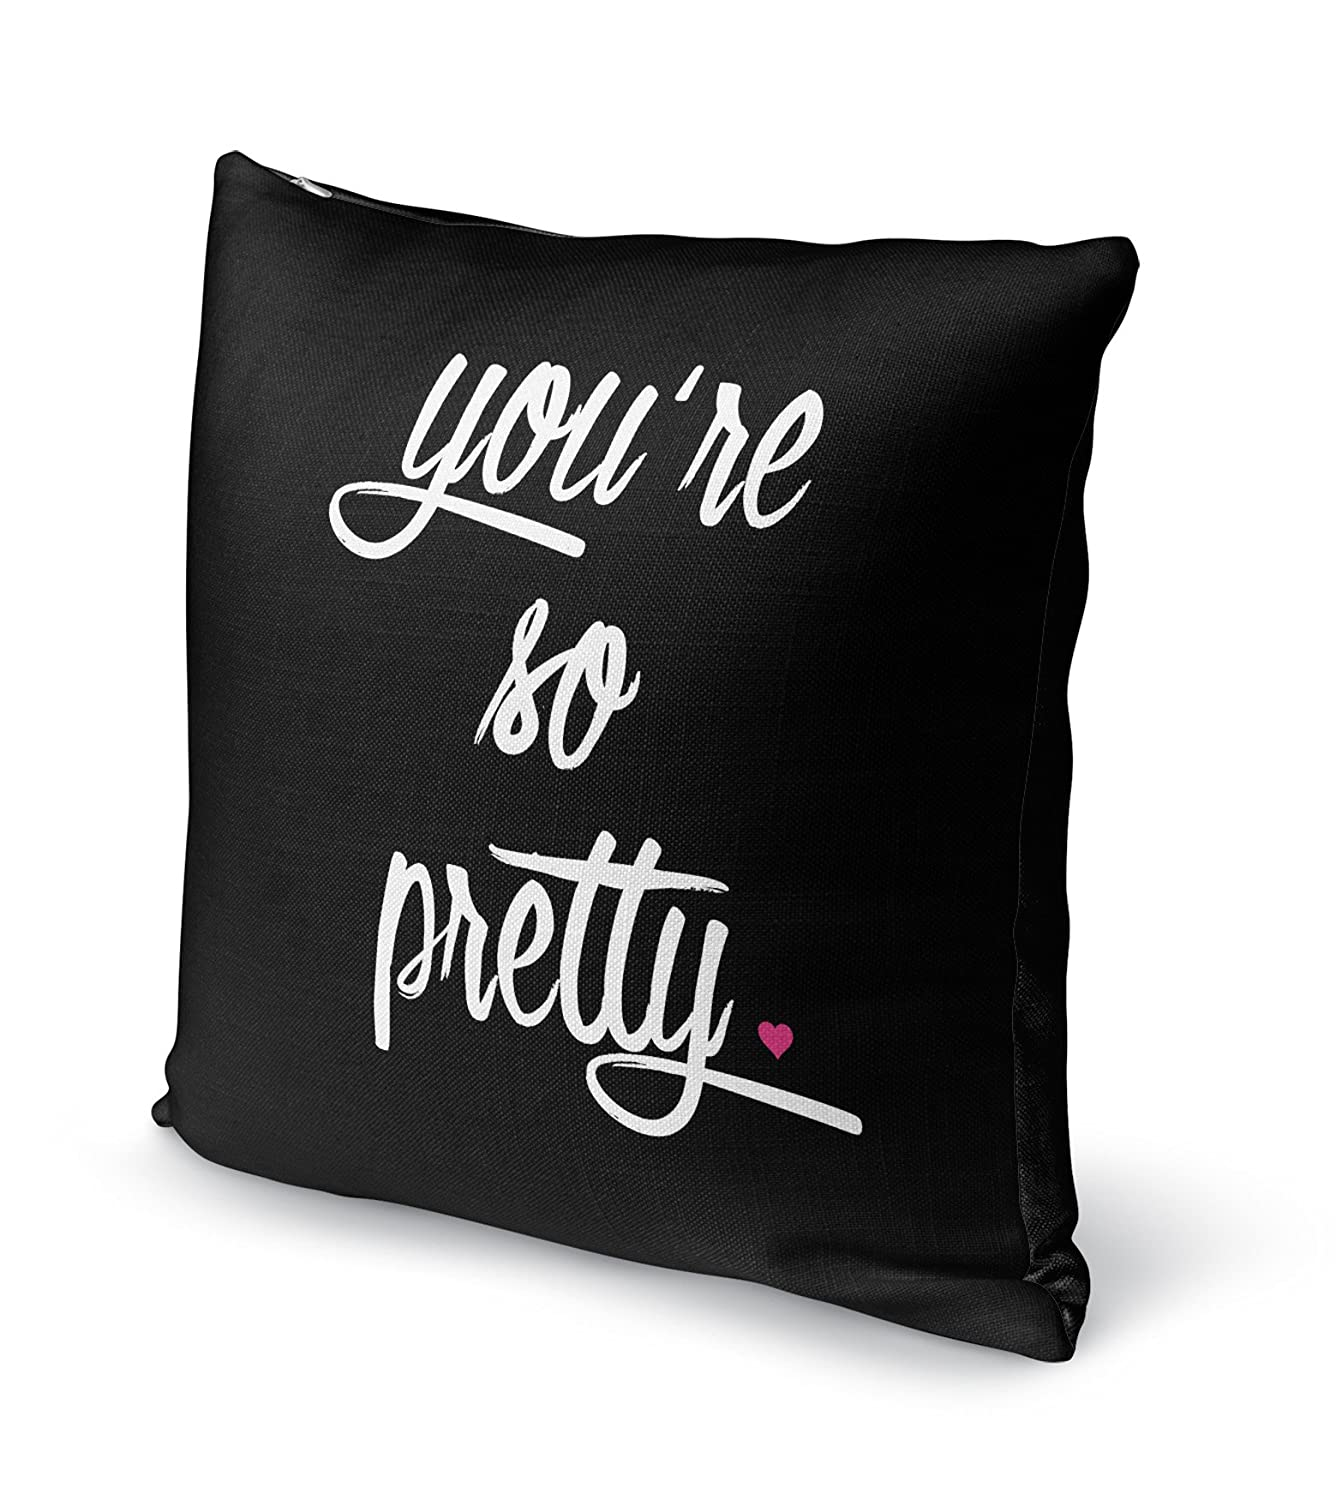 KAVKA Designs Youre So Pretty Accent Pillow, - TRADITIONS Collection Pink SCRAVC3006DI16 Size: 16X16X6 -